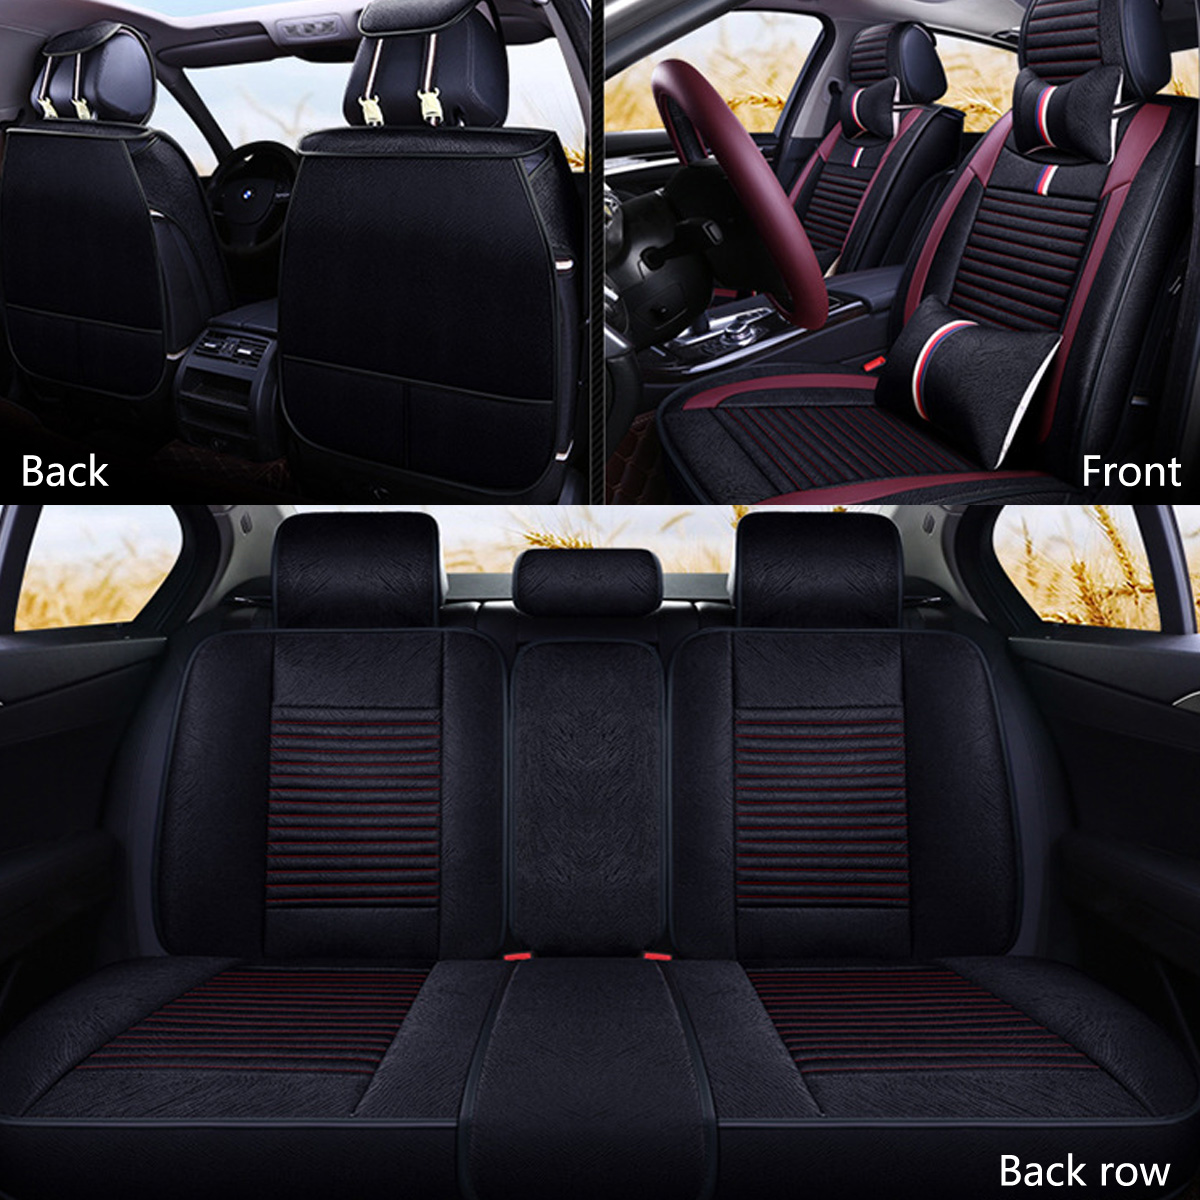 12Pcs Luxury 5-Seat Car Seat Cover Front Rear with Pillow Waist Cushion Black Red